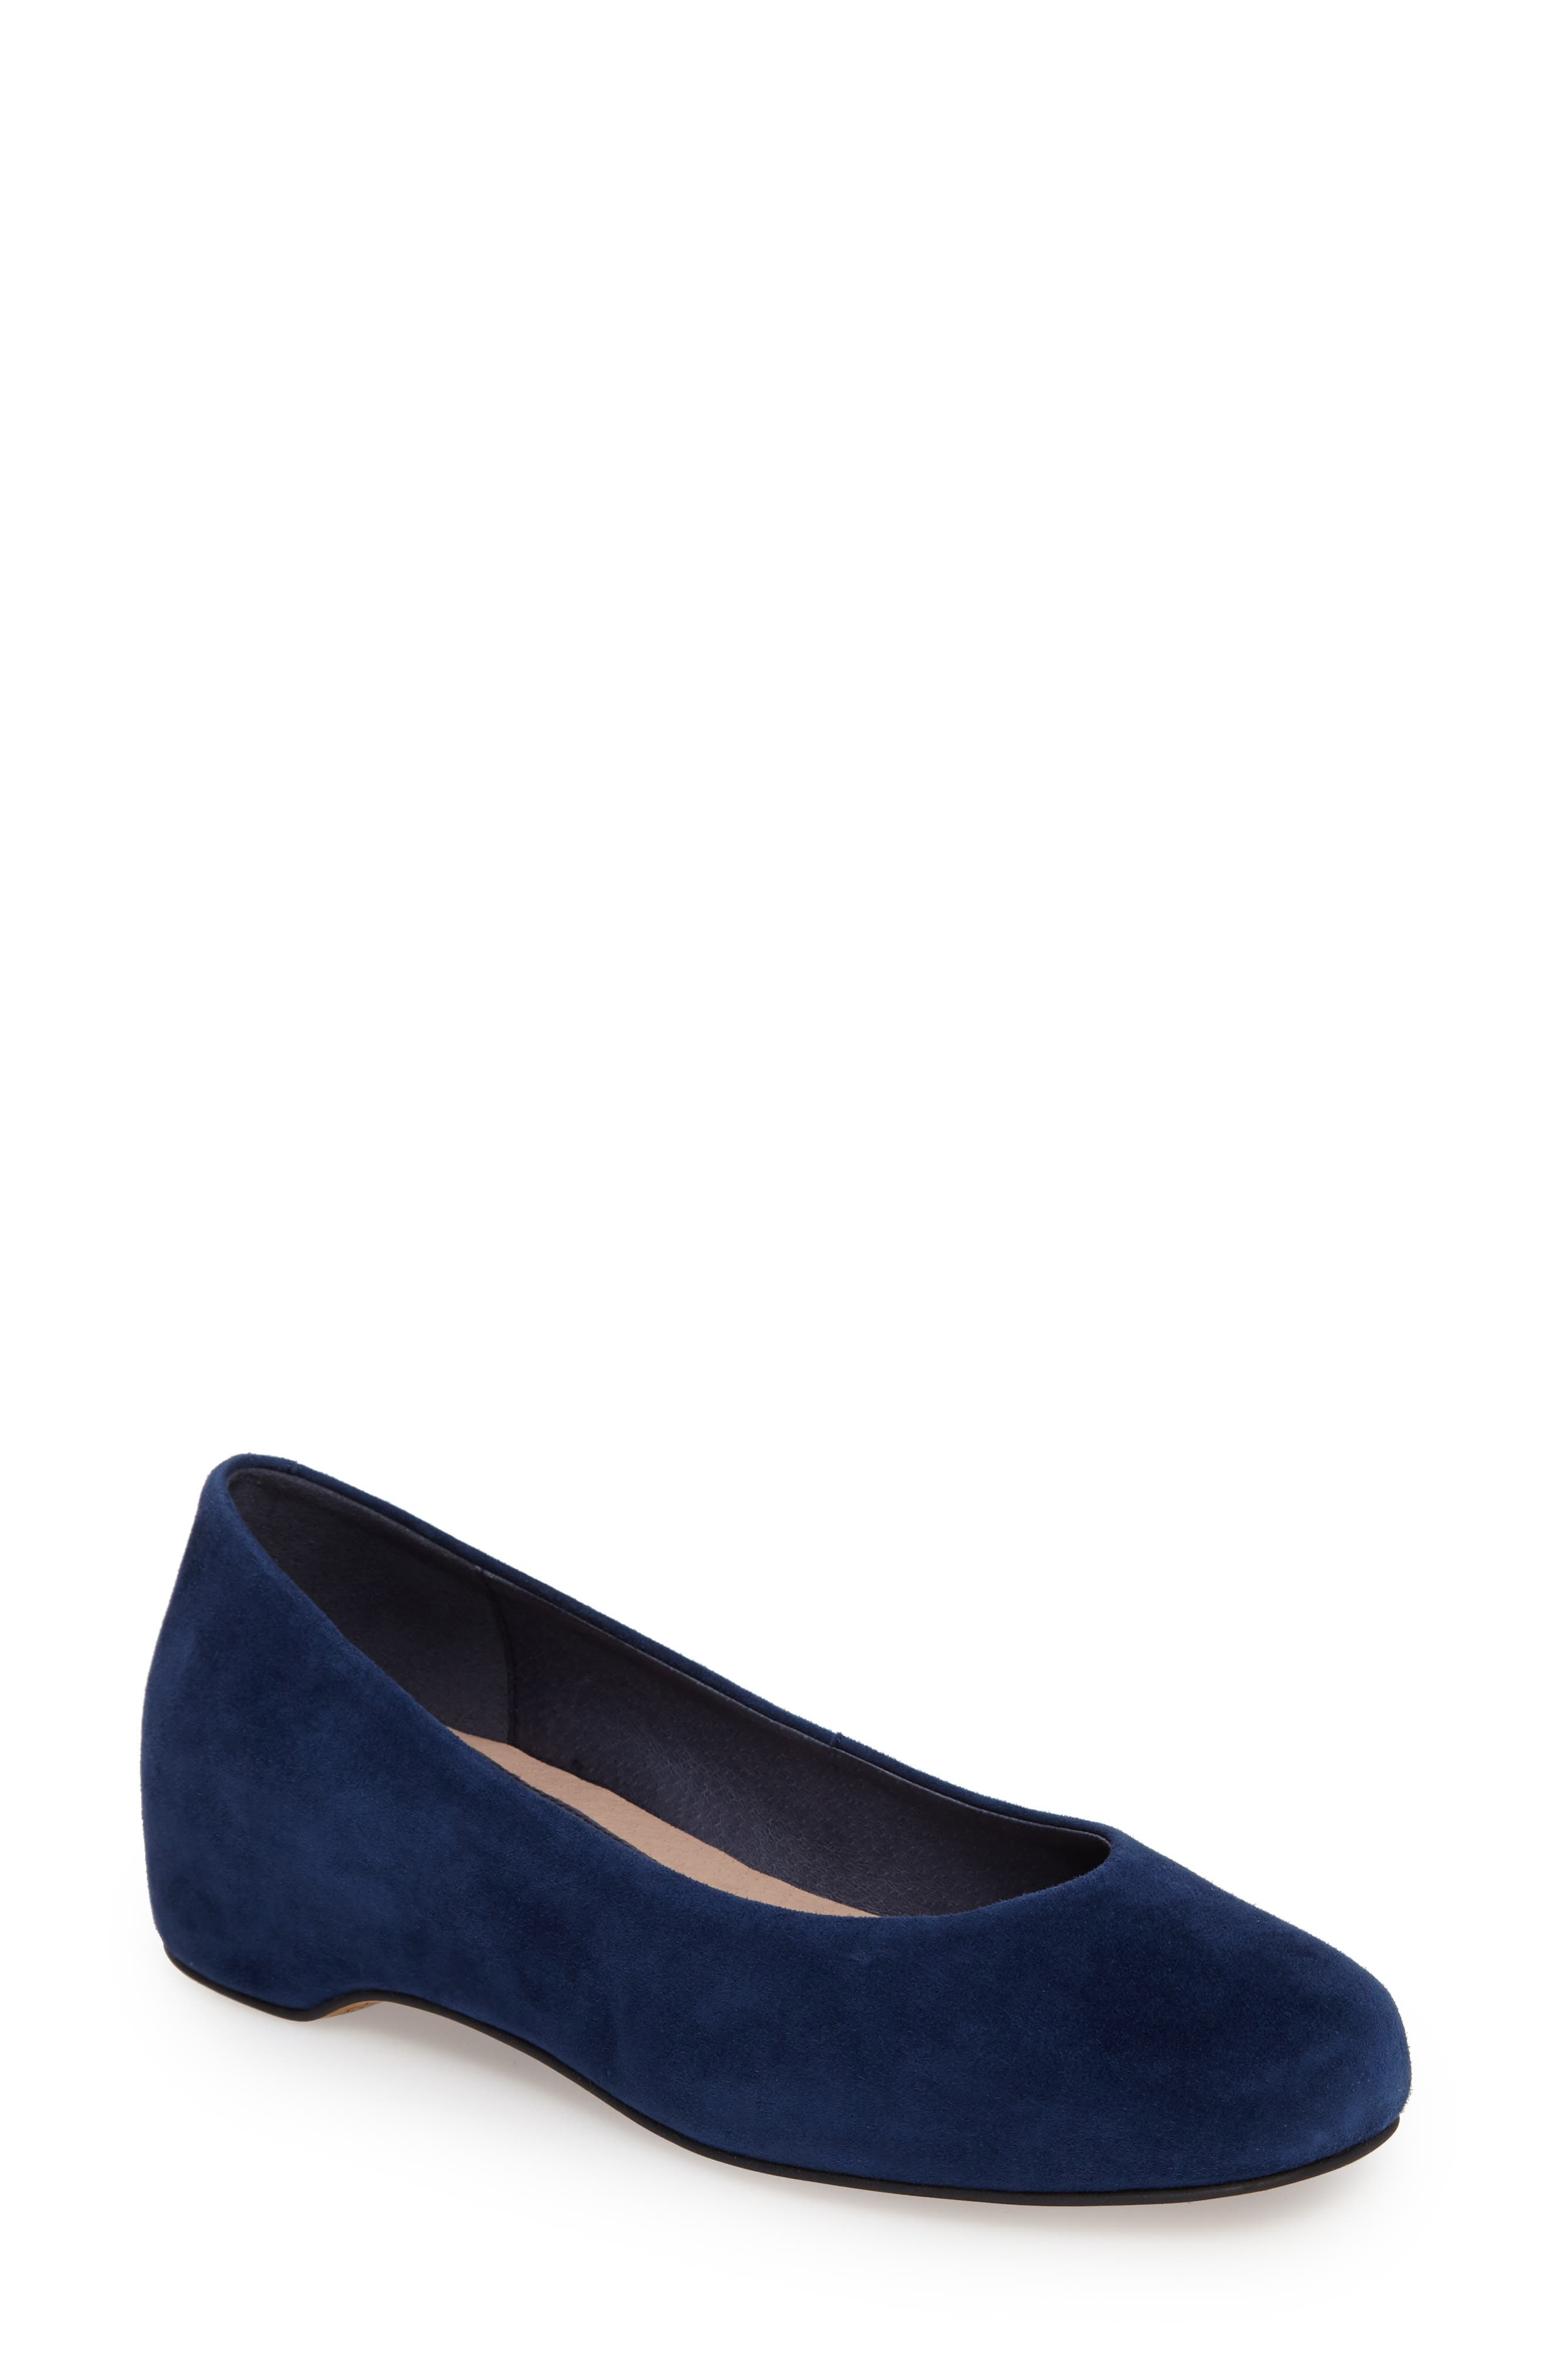 Serena Flat,                         Main,                         color, Blue Leather